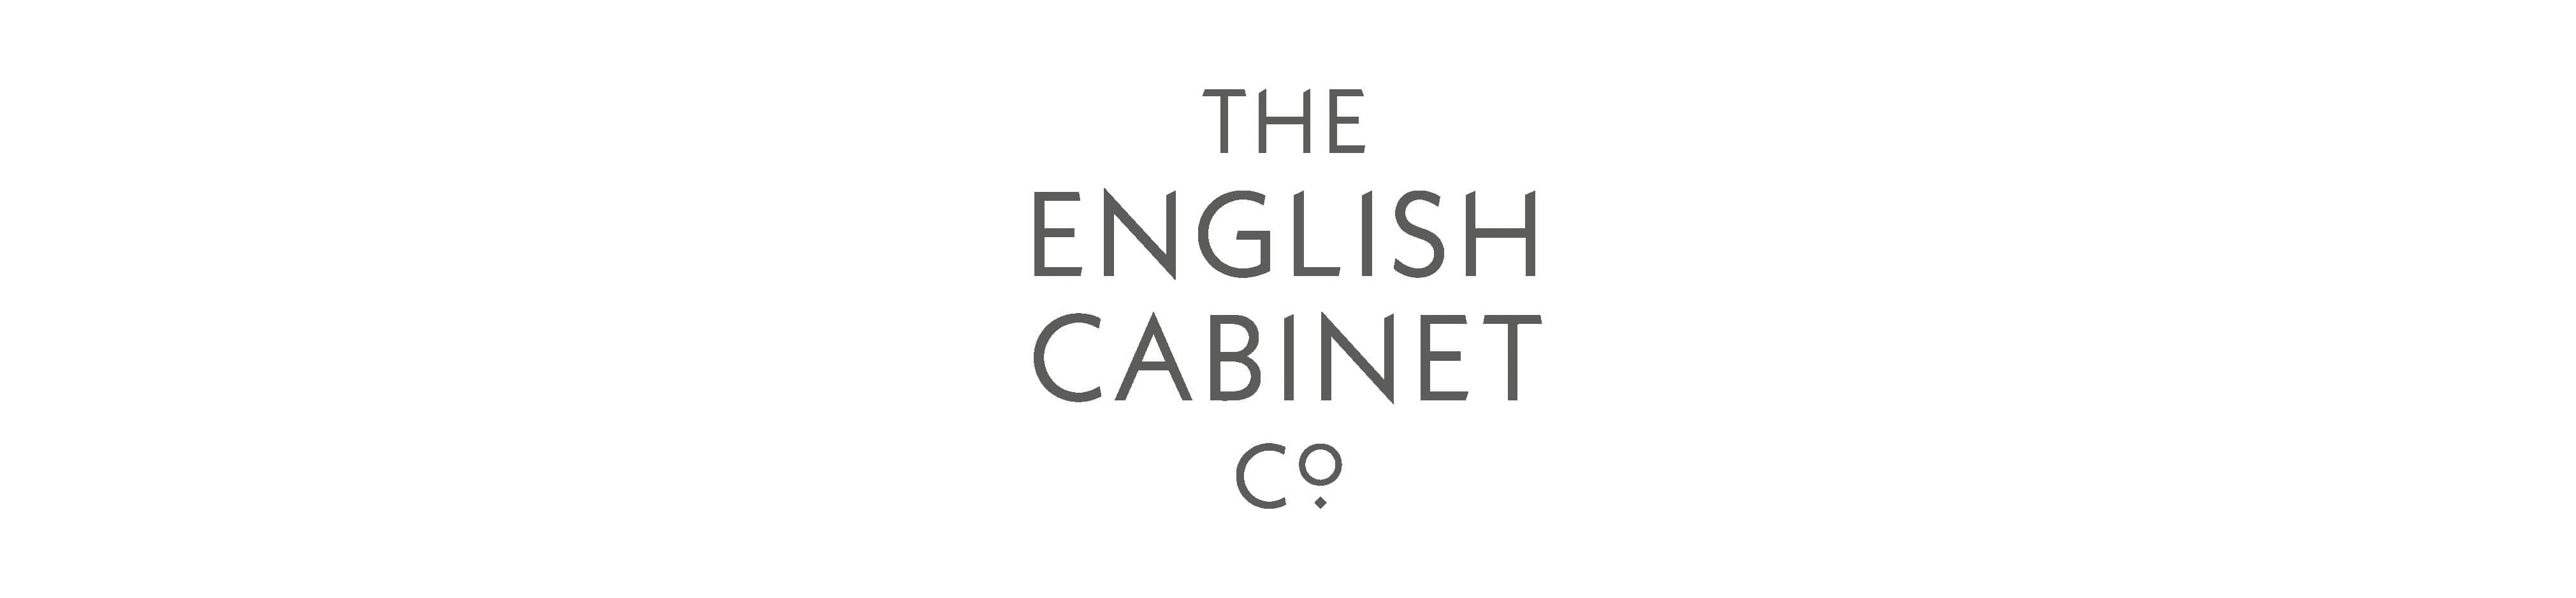 the english cabinet co logo